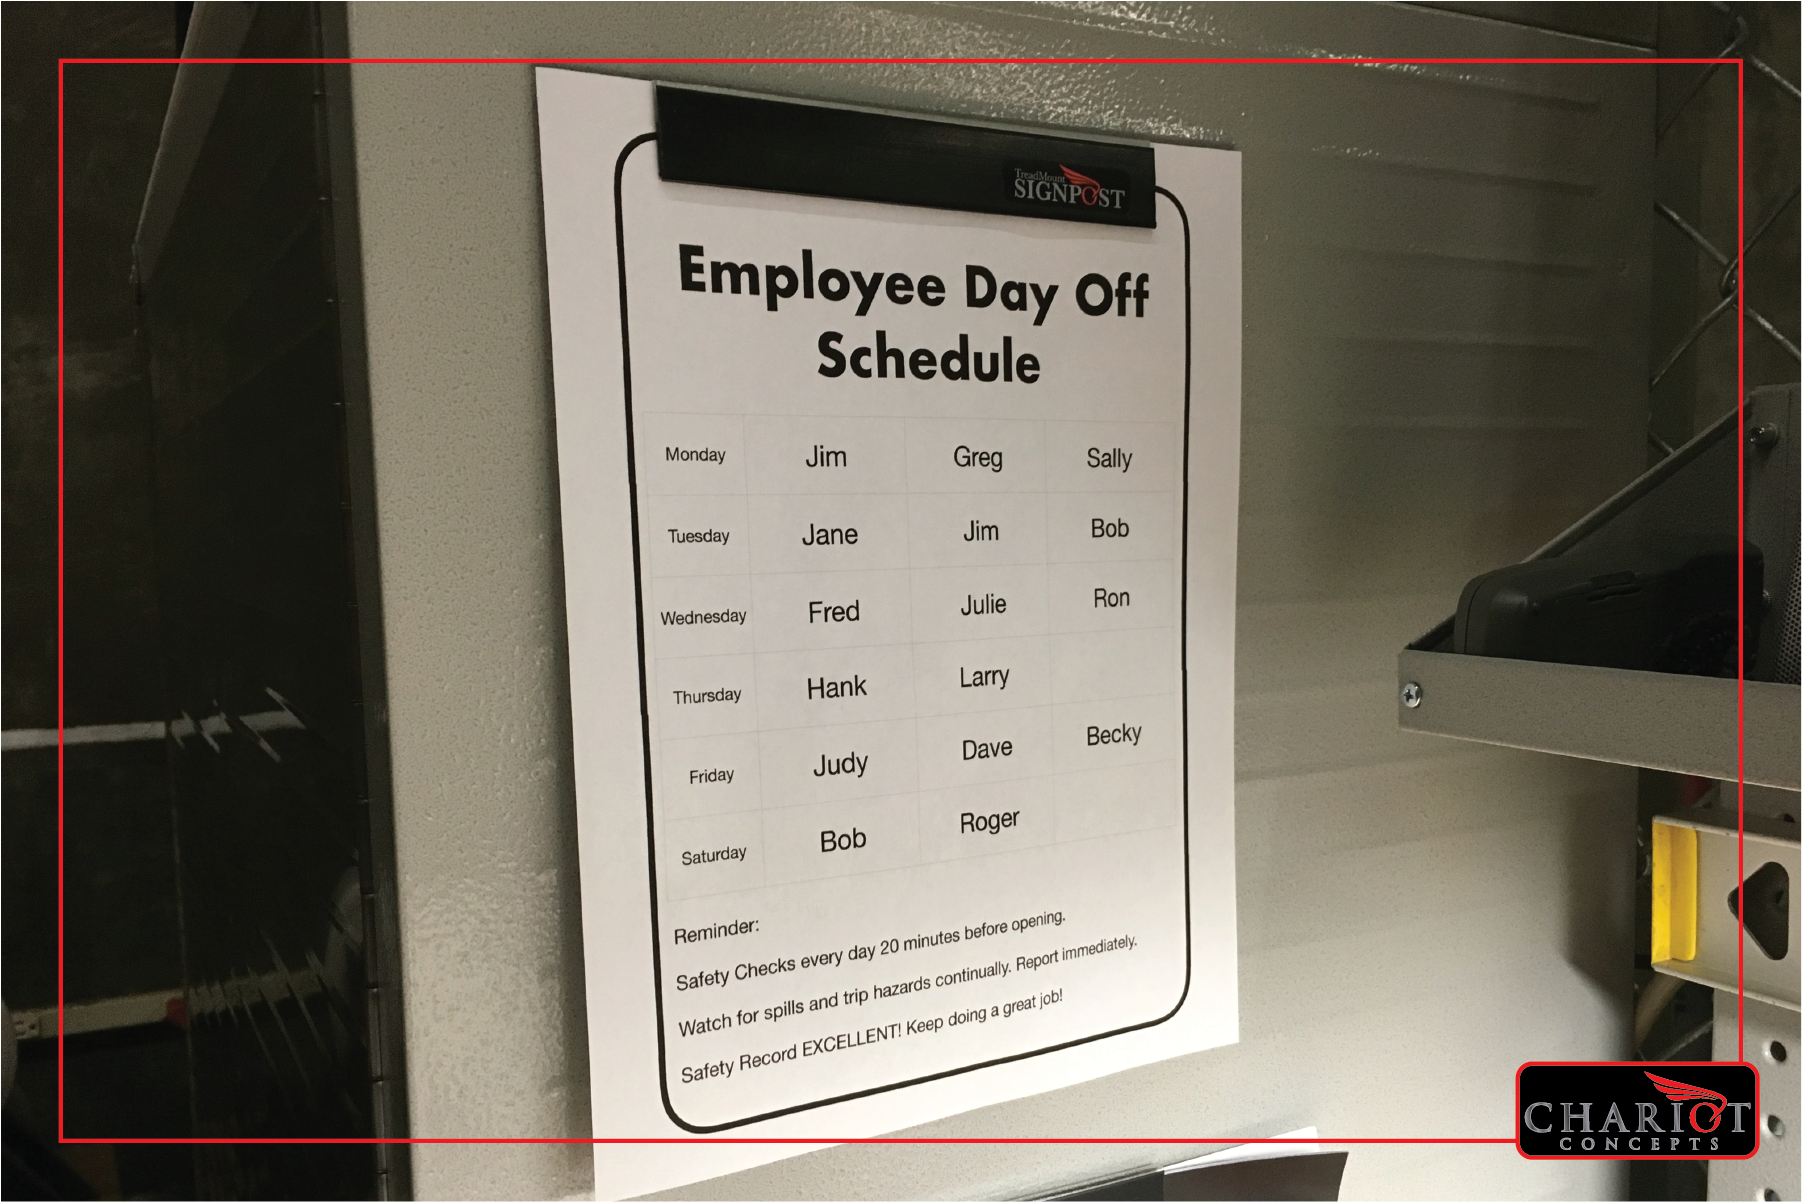 Are you tired of the mess left behind by tape when posting schedules? The Slat&Rack Signpost provides a permanently attached quick-change magnetic clamp for your schedules. Change them out without a hassle or a mess.